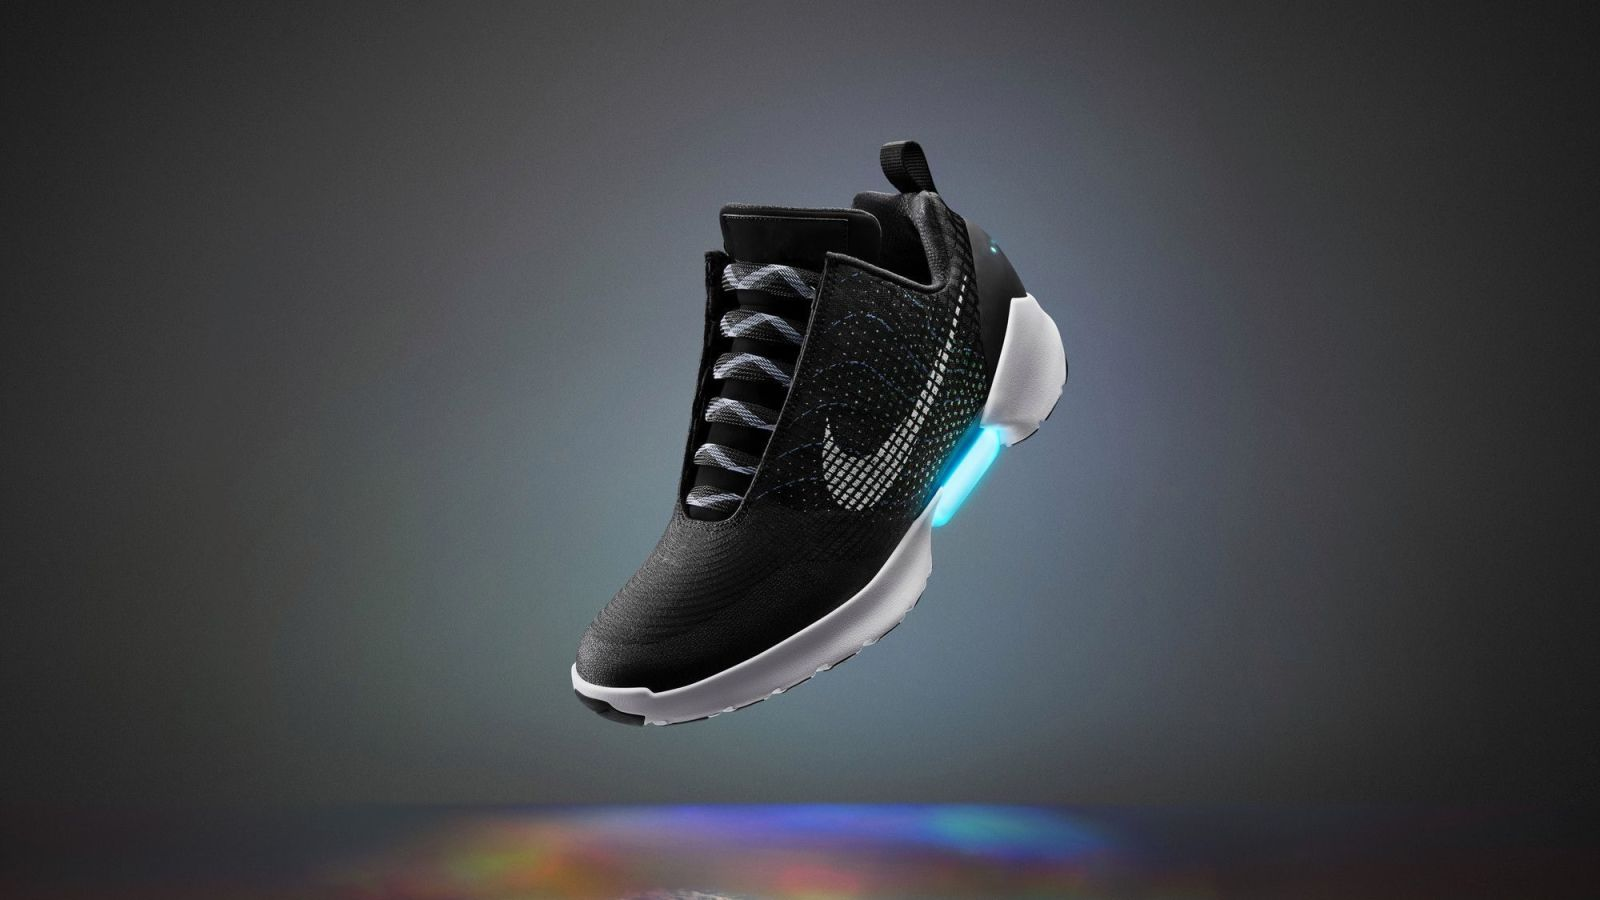 Who Created Nikes Self Lacing Shoes